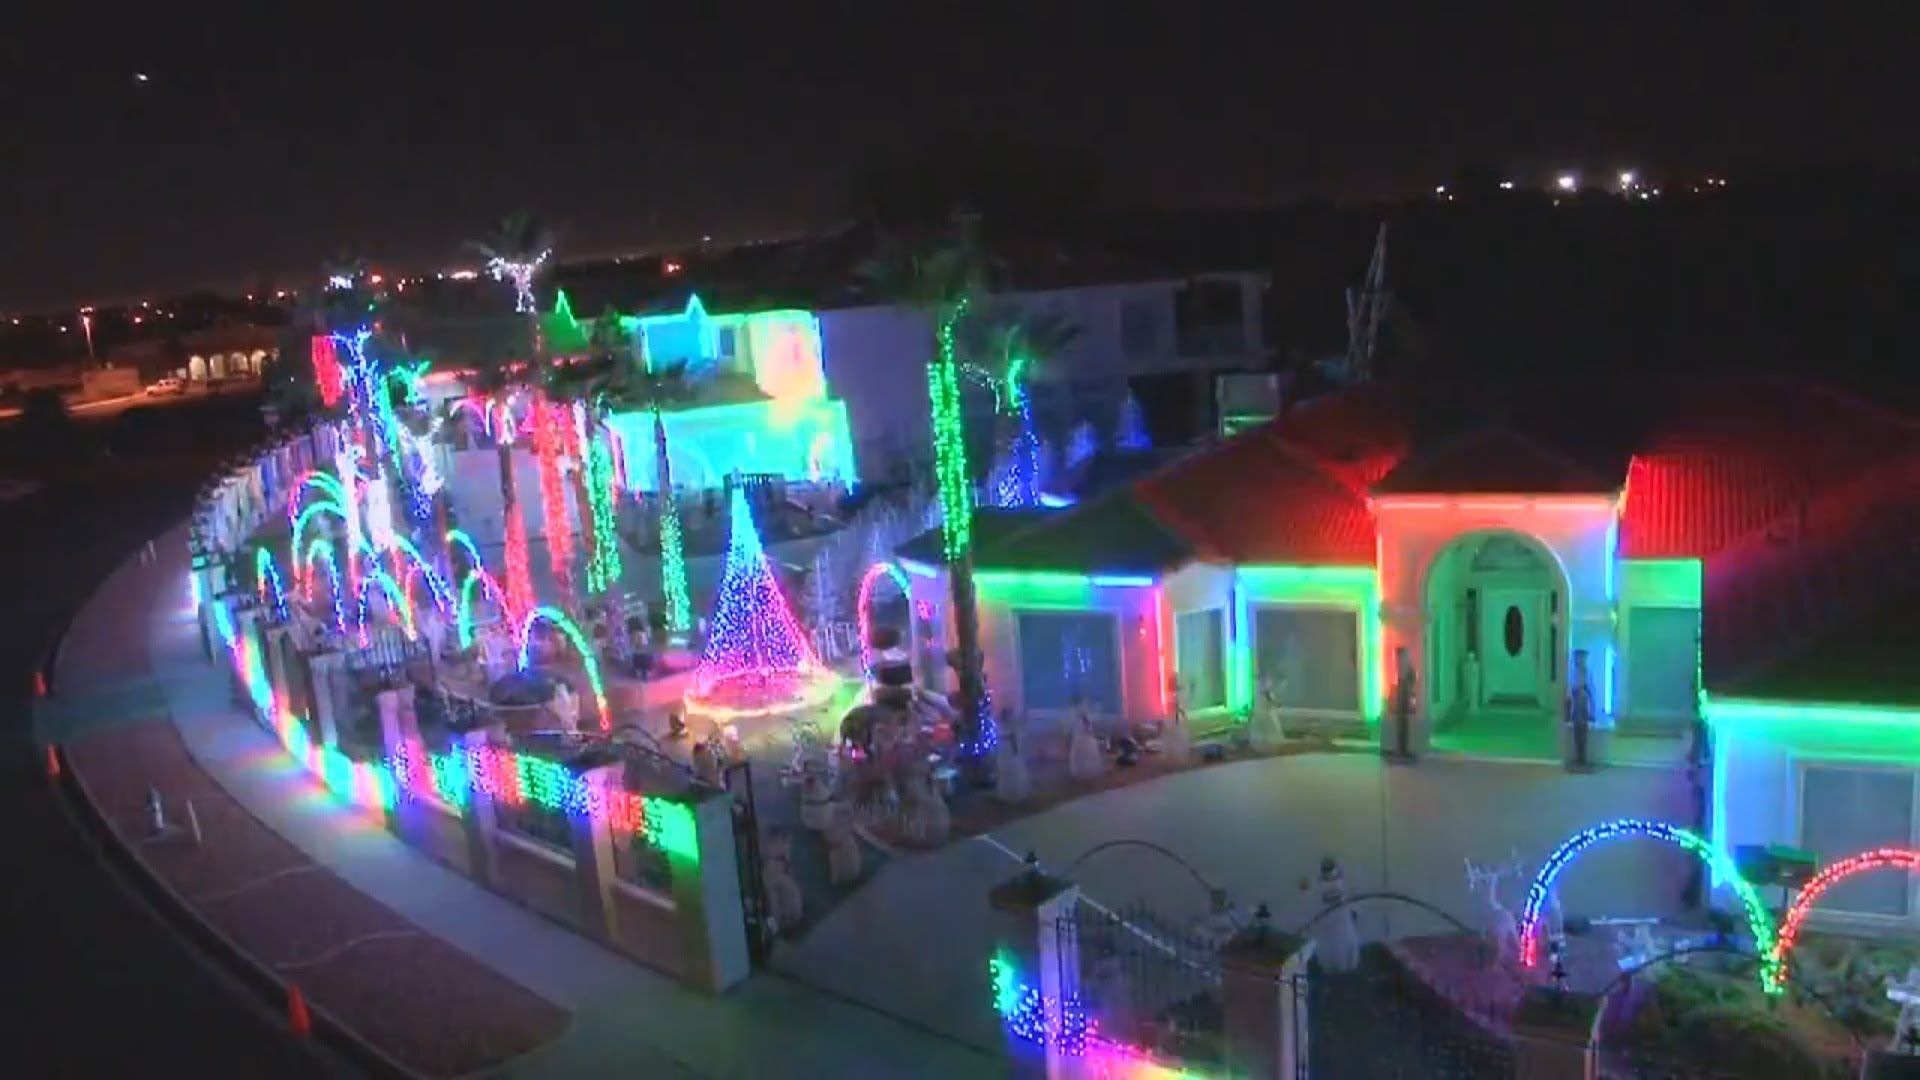 6 Of The Best Christmas Light Displays Ever!!! 4 Different Houses ...